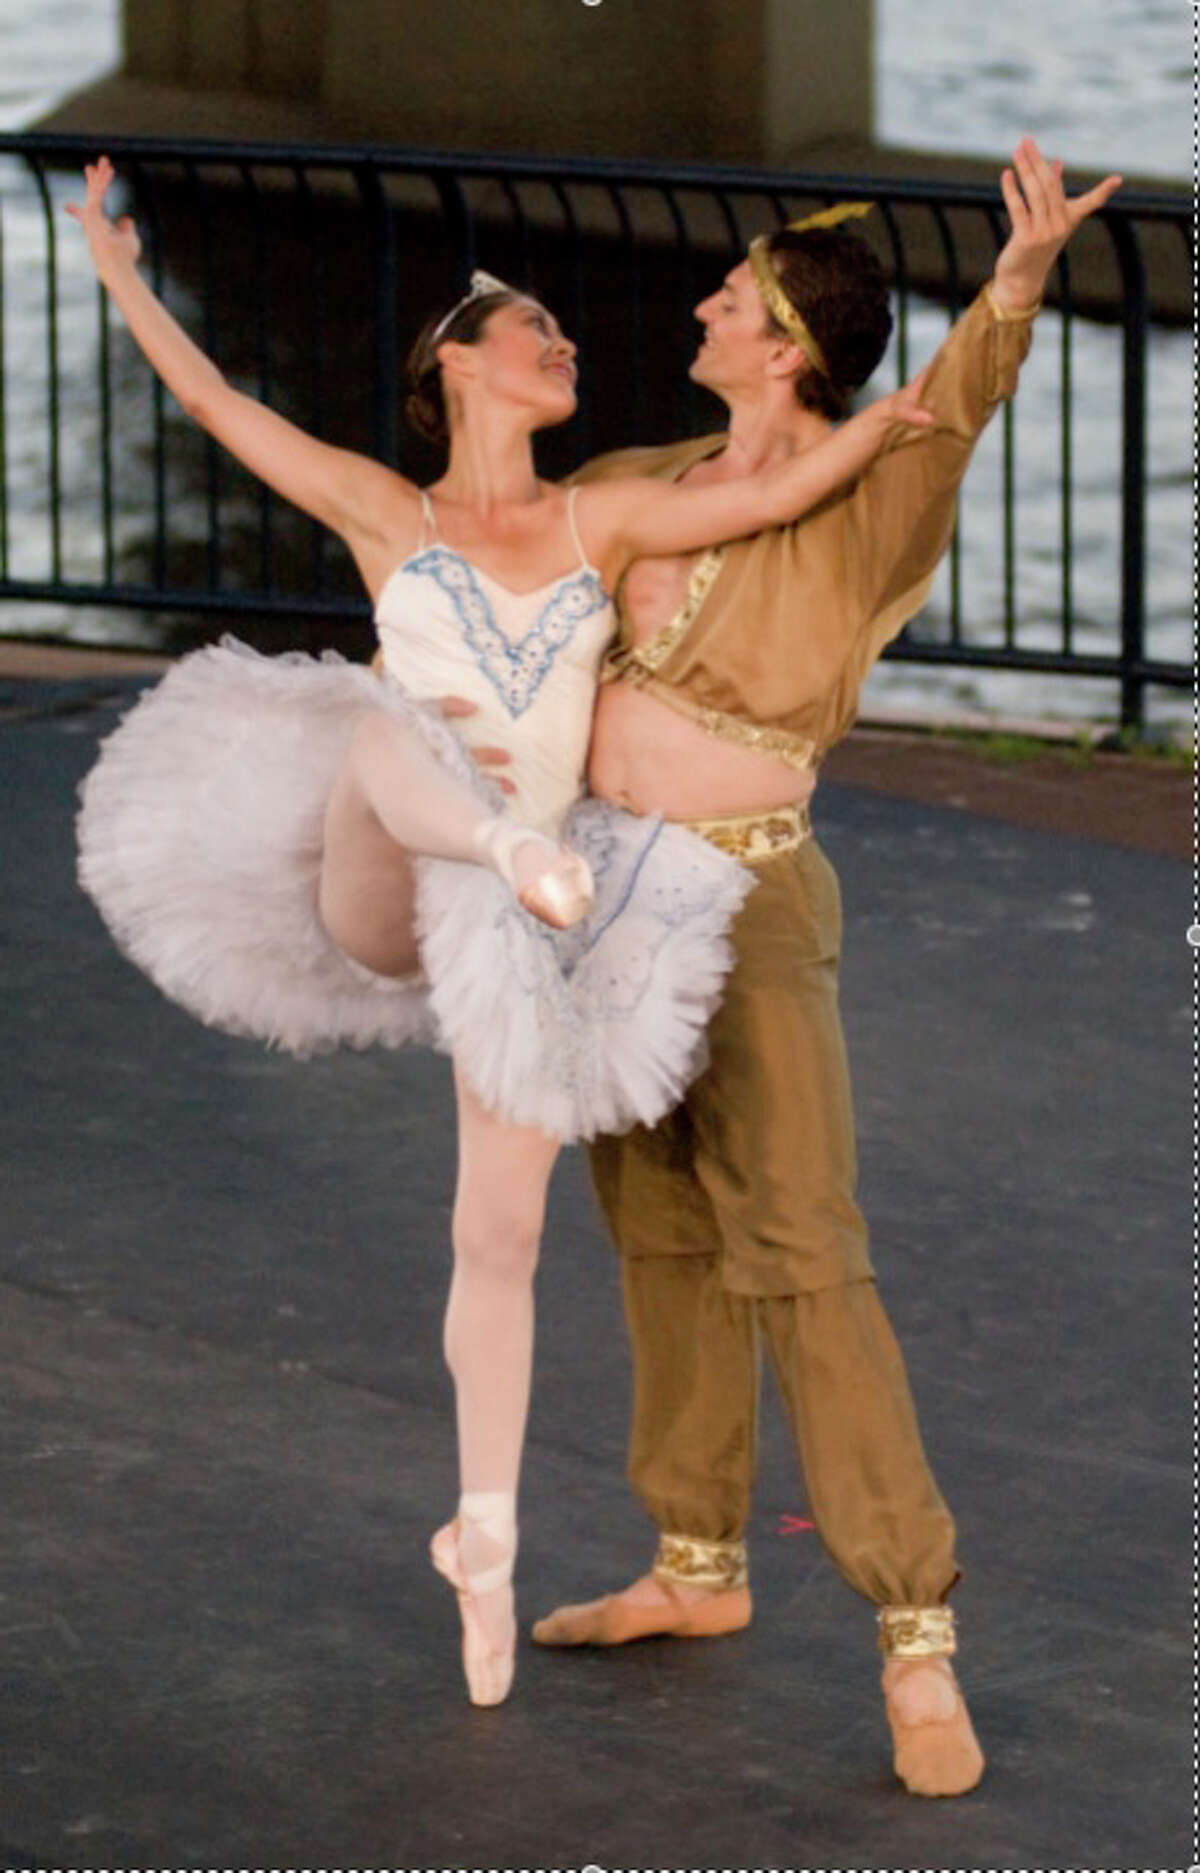 """A pas de deux from """"Swan Lake"""" will be one of the Connecticut Ballet duets at a free performance in Ives Concert Park in Danbury on Friday, July 26."""